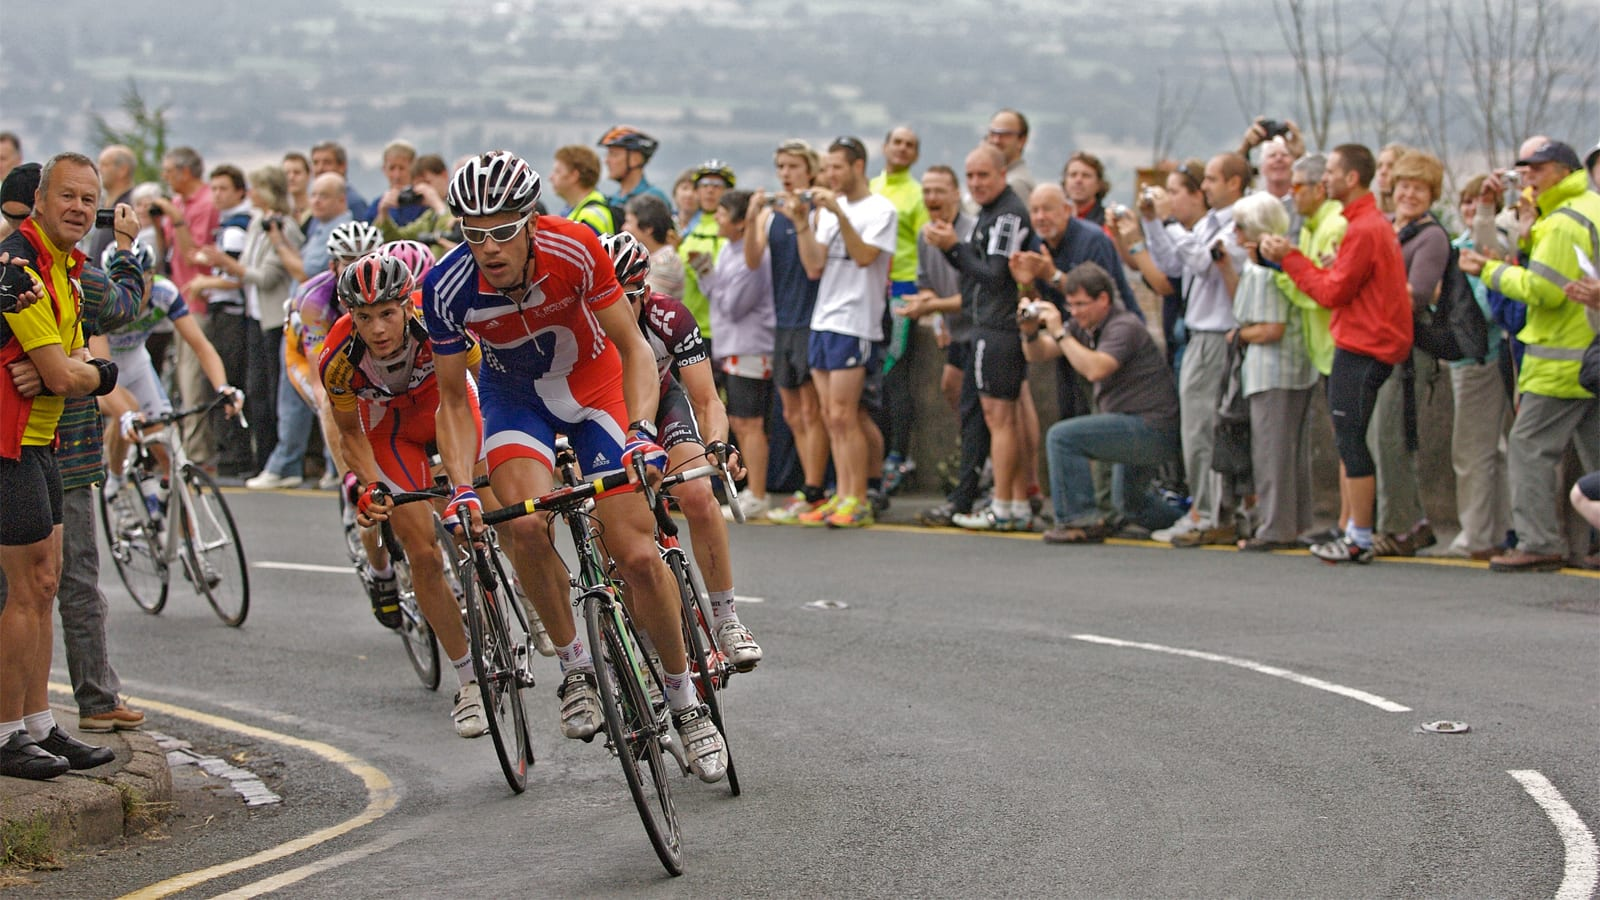 2007 Tour of Britain